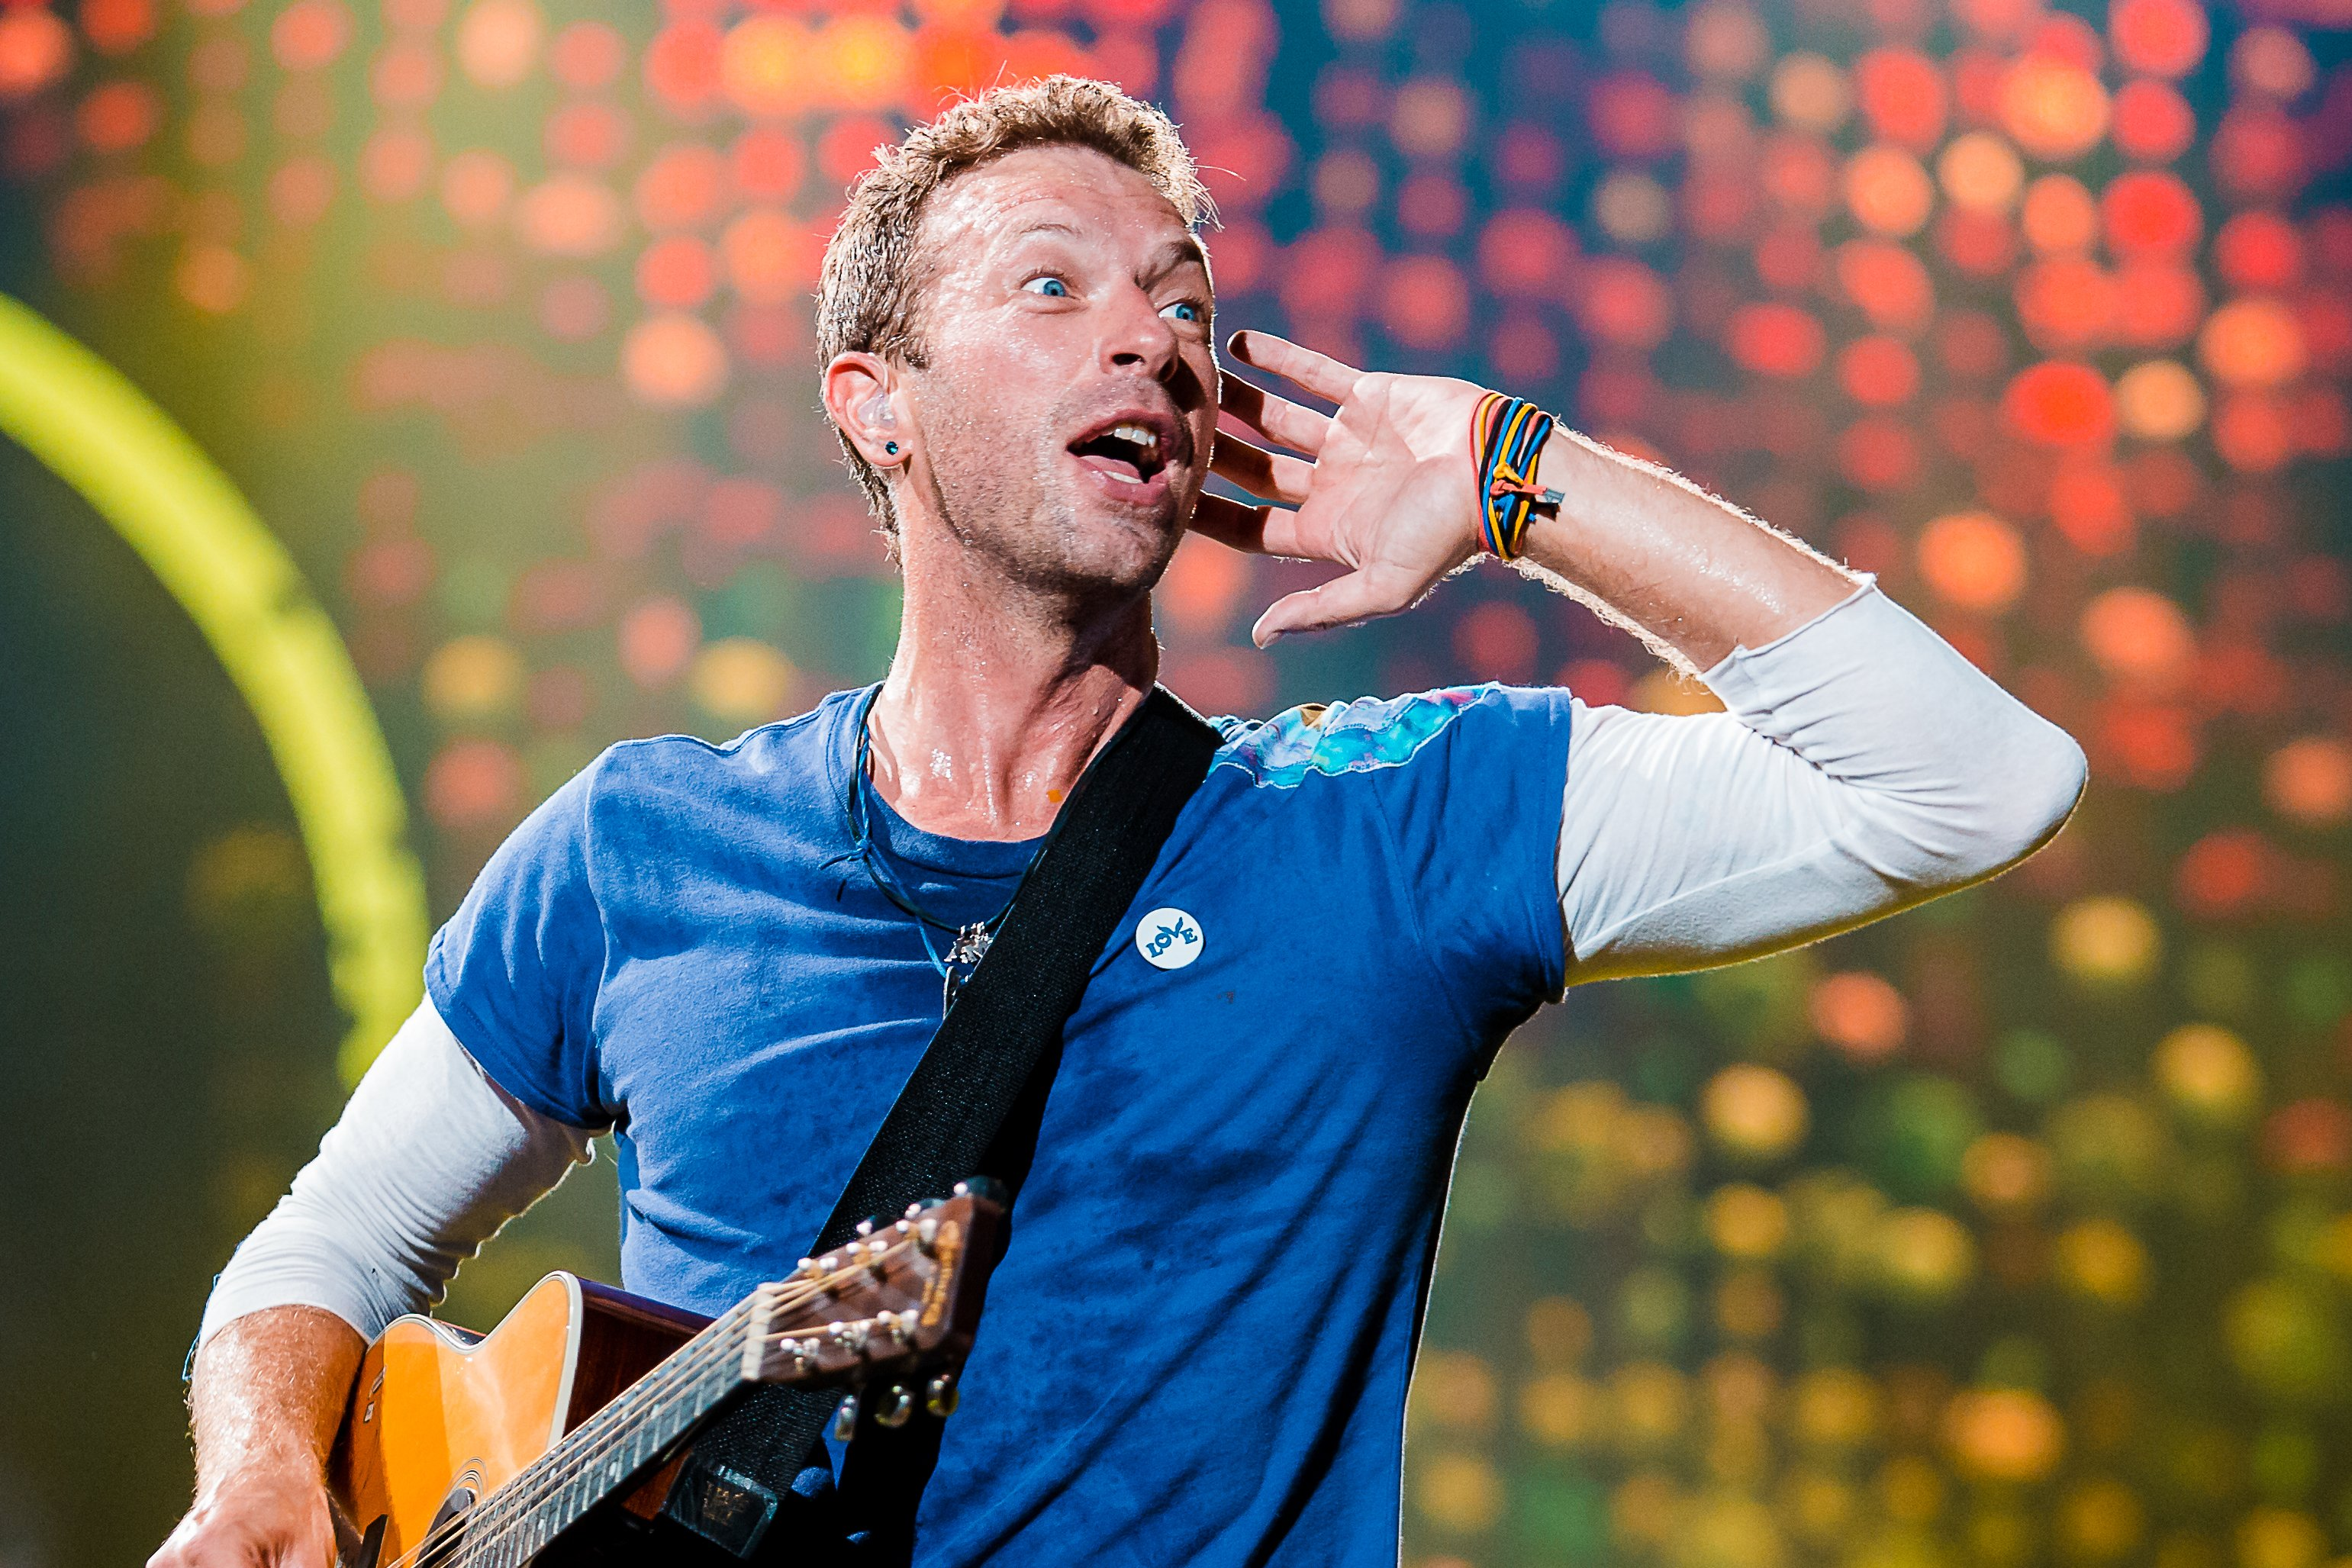 Chris Martin during a 2017 performance in Brazil. | Photo: Getty Images